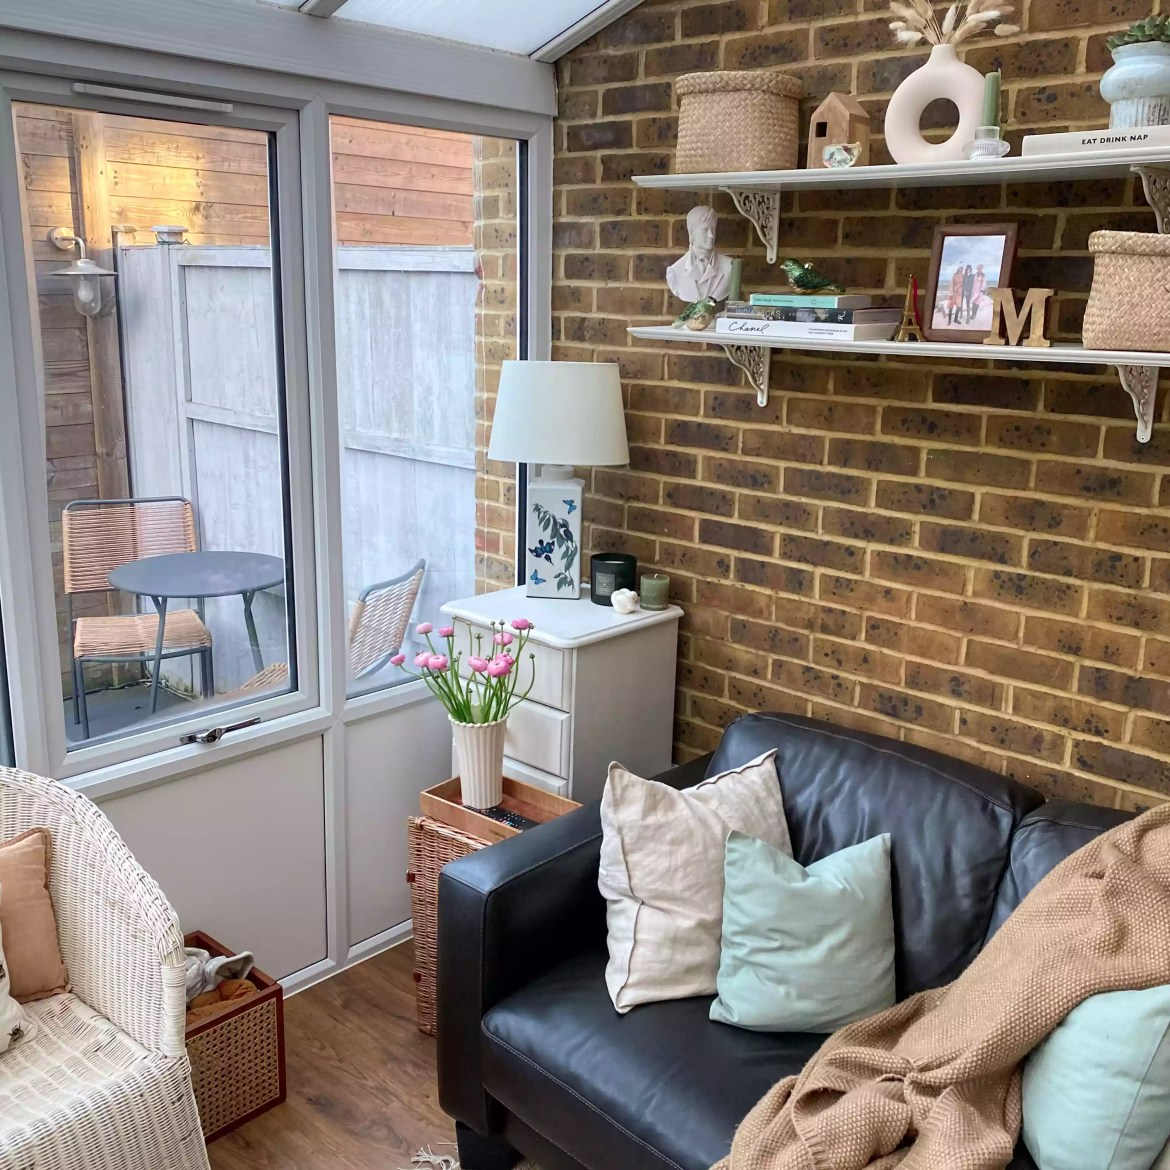 Quaint living room with brick wall and pastel accents.